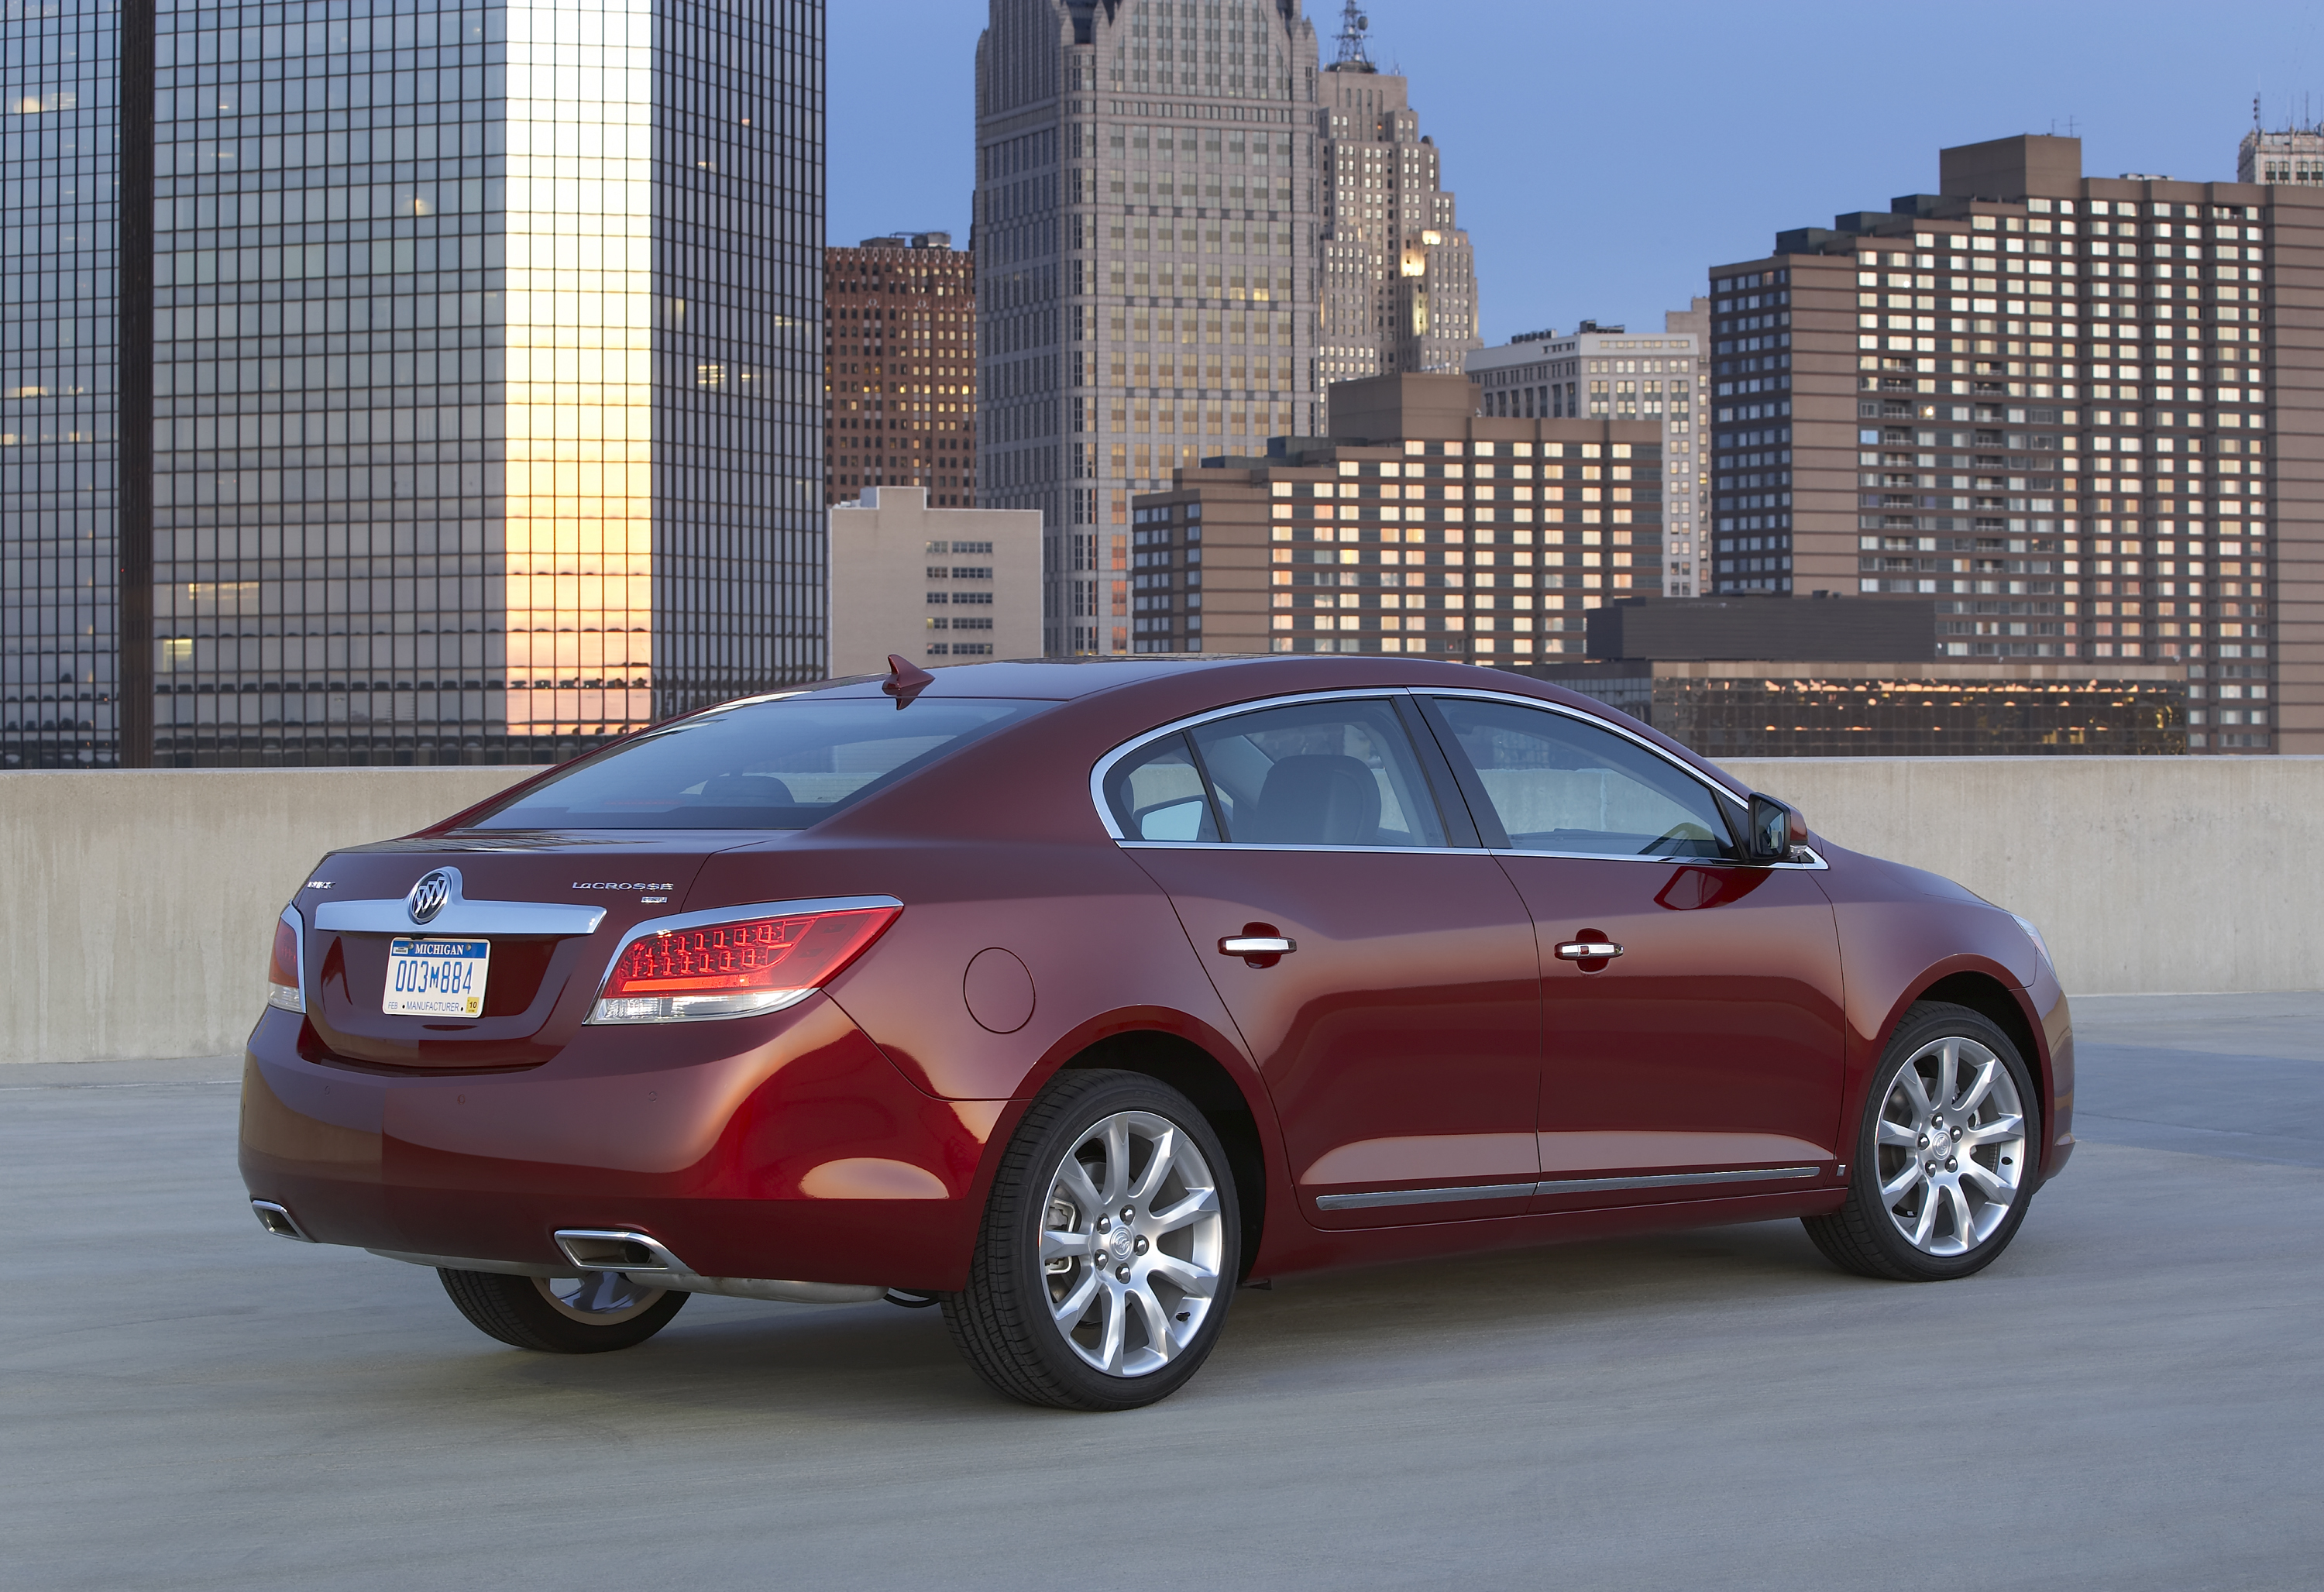 blog ignition regal cx word lacrosse tweets the gs buick on awd test road